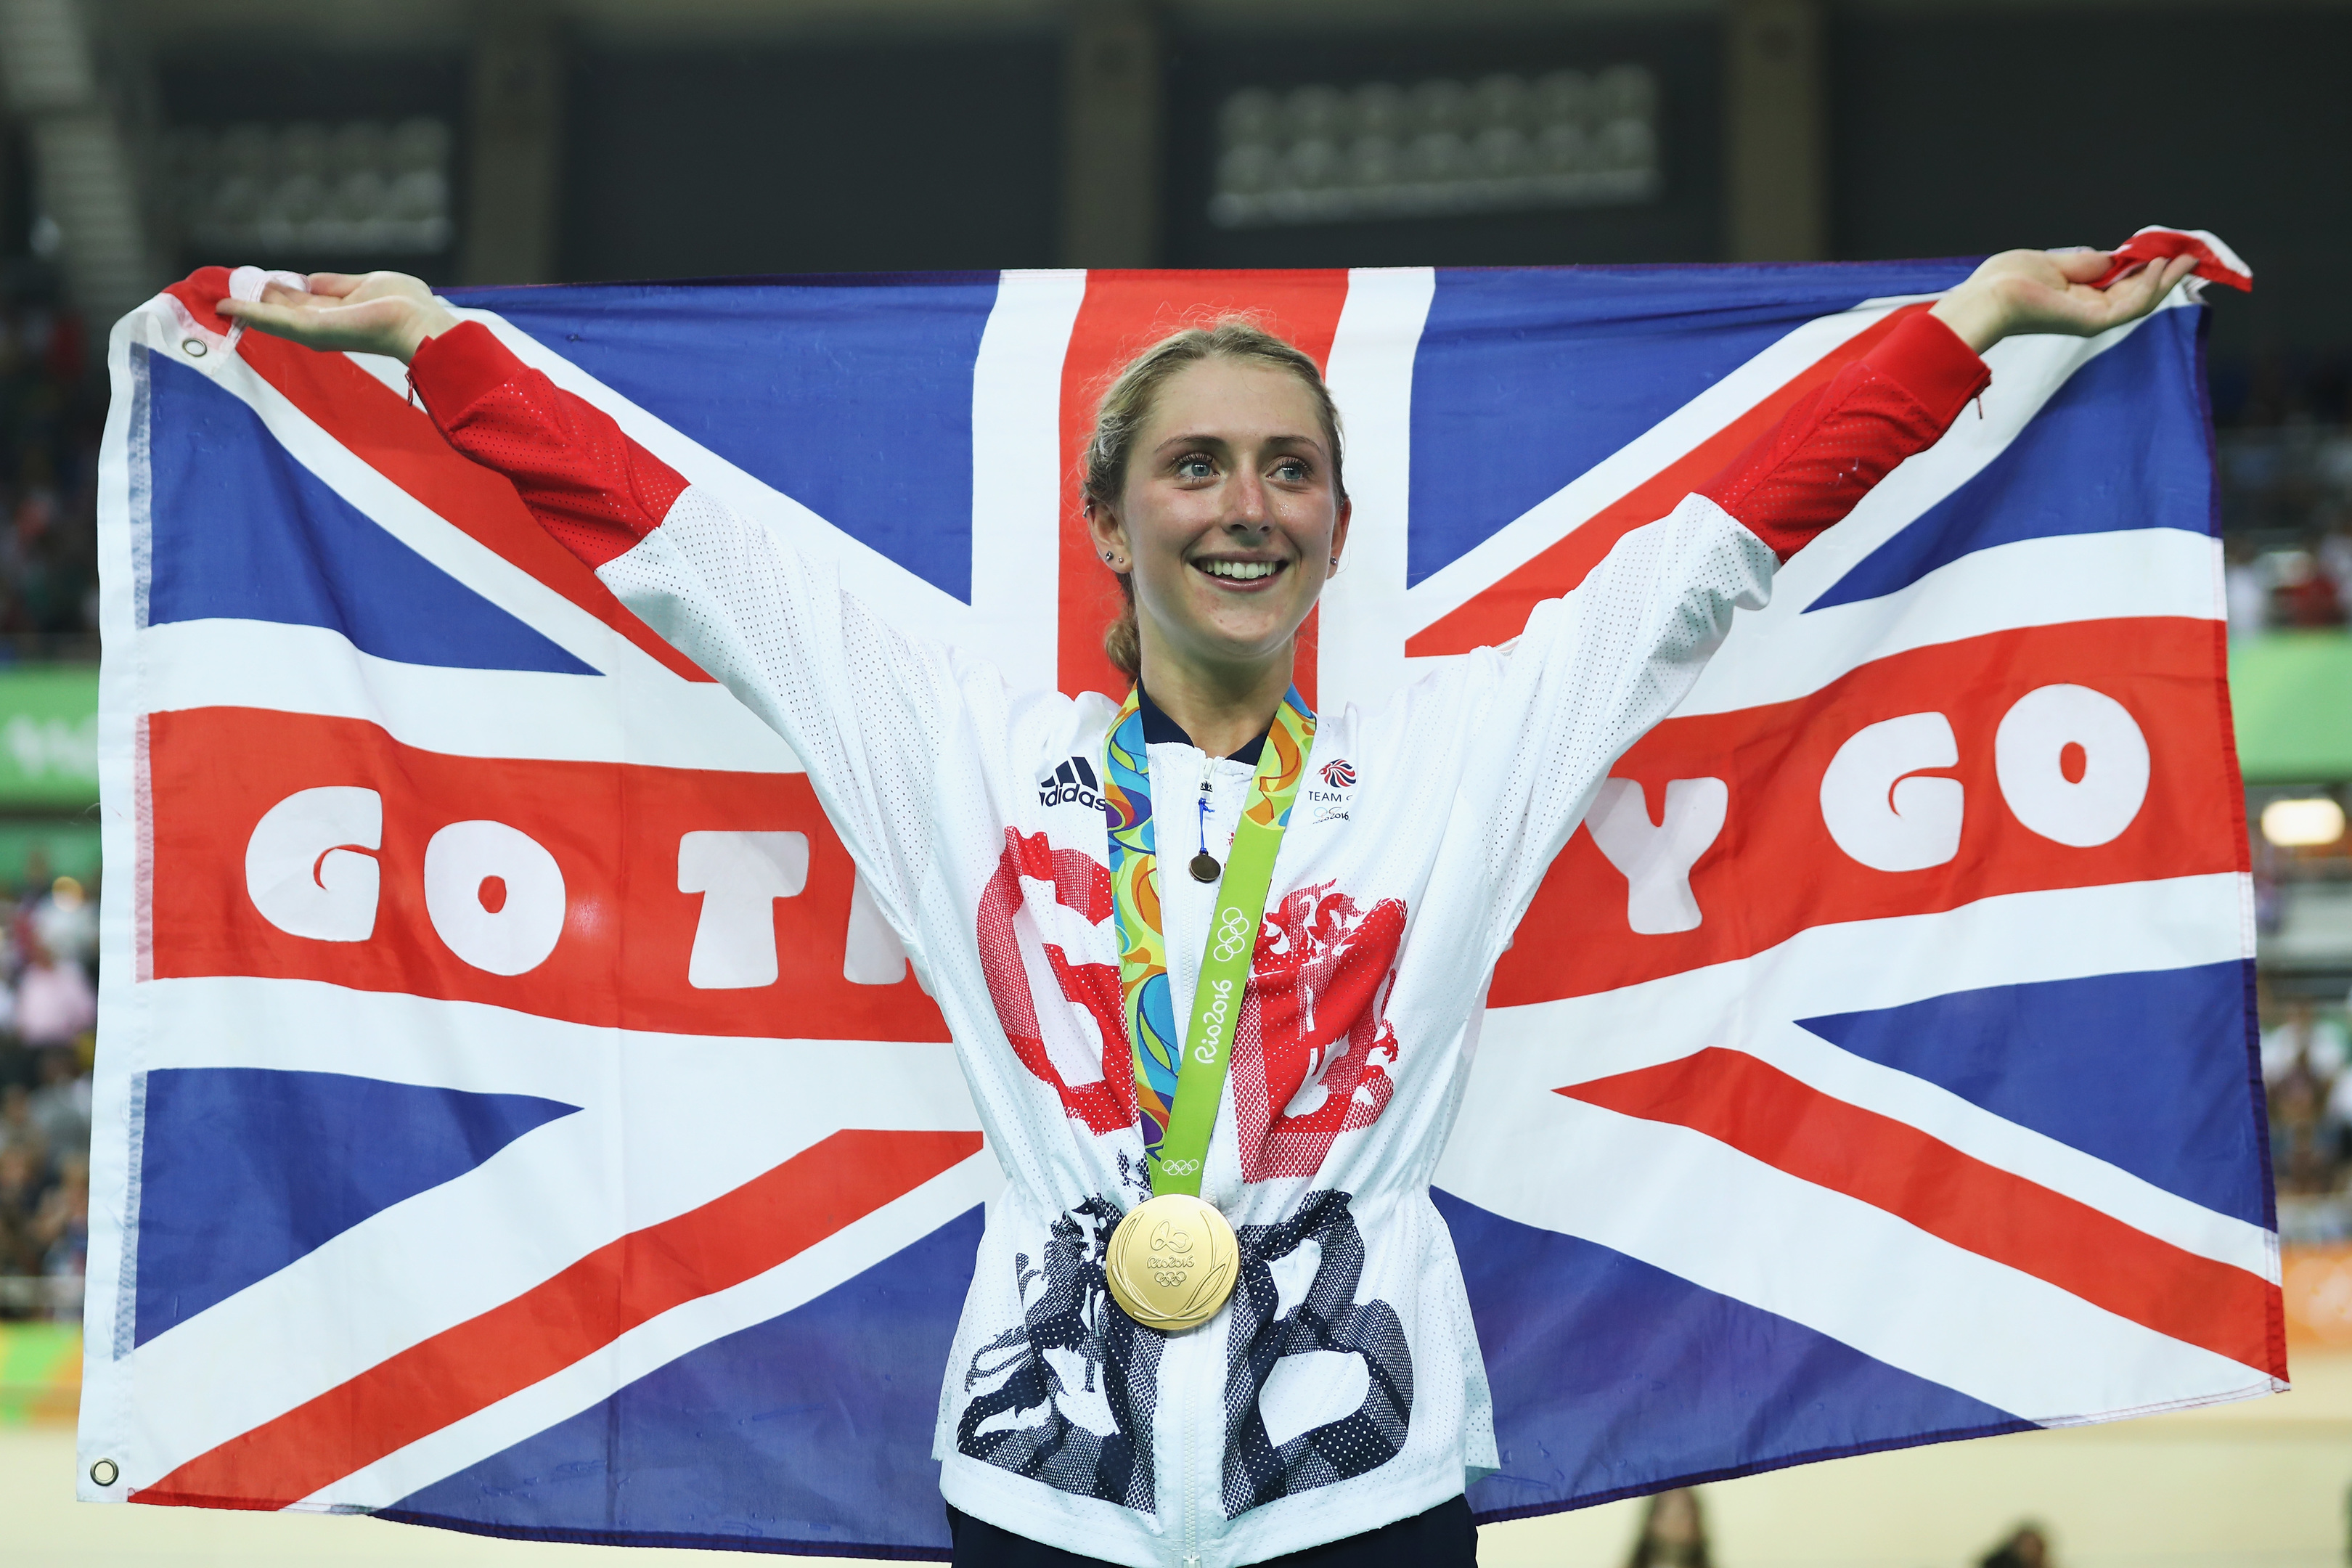 Gold medalist Laura Trott of Great Britain celebrates during the medal ceremony after the women's Omnium Points race (Bryn Lennon/Getty Images)